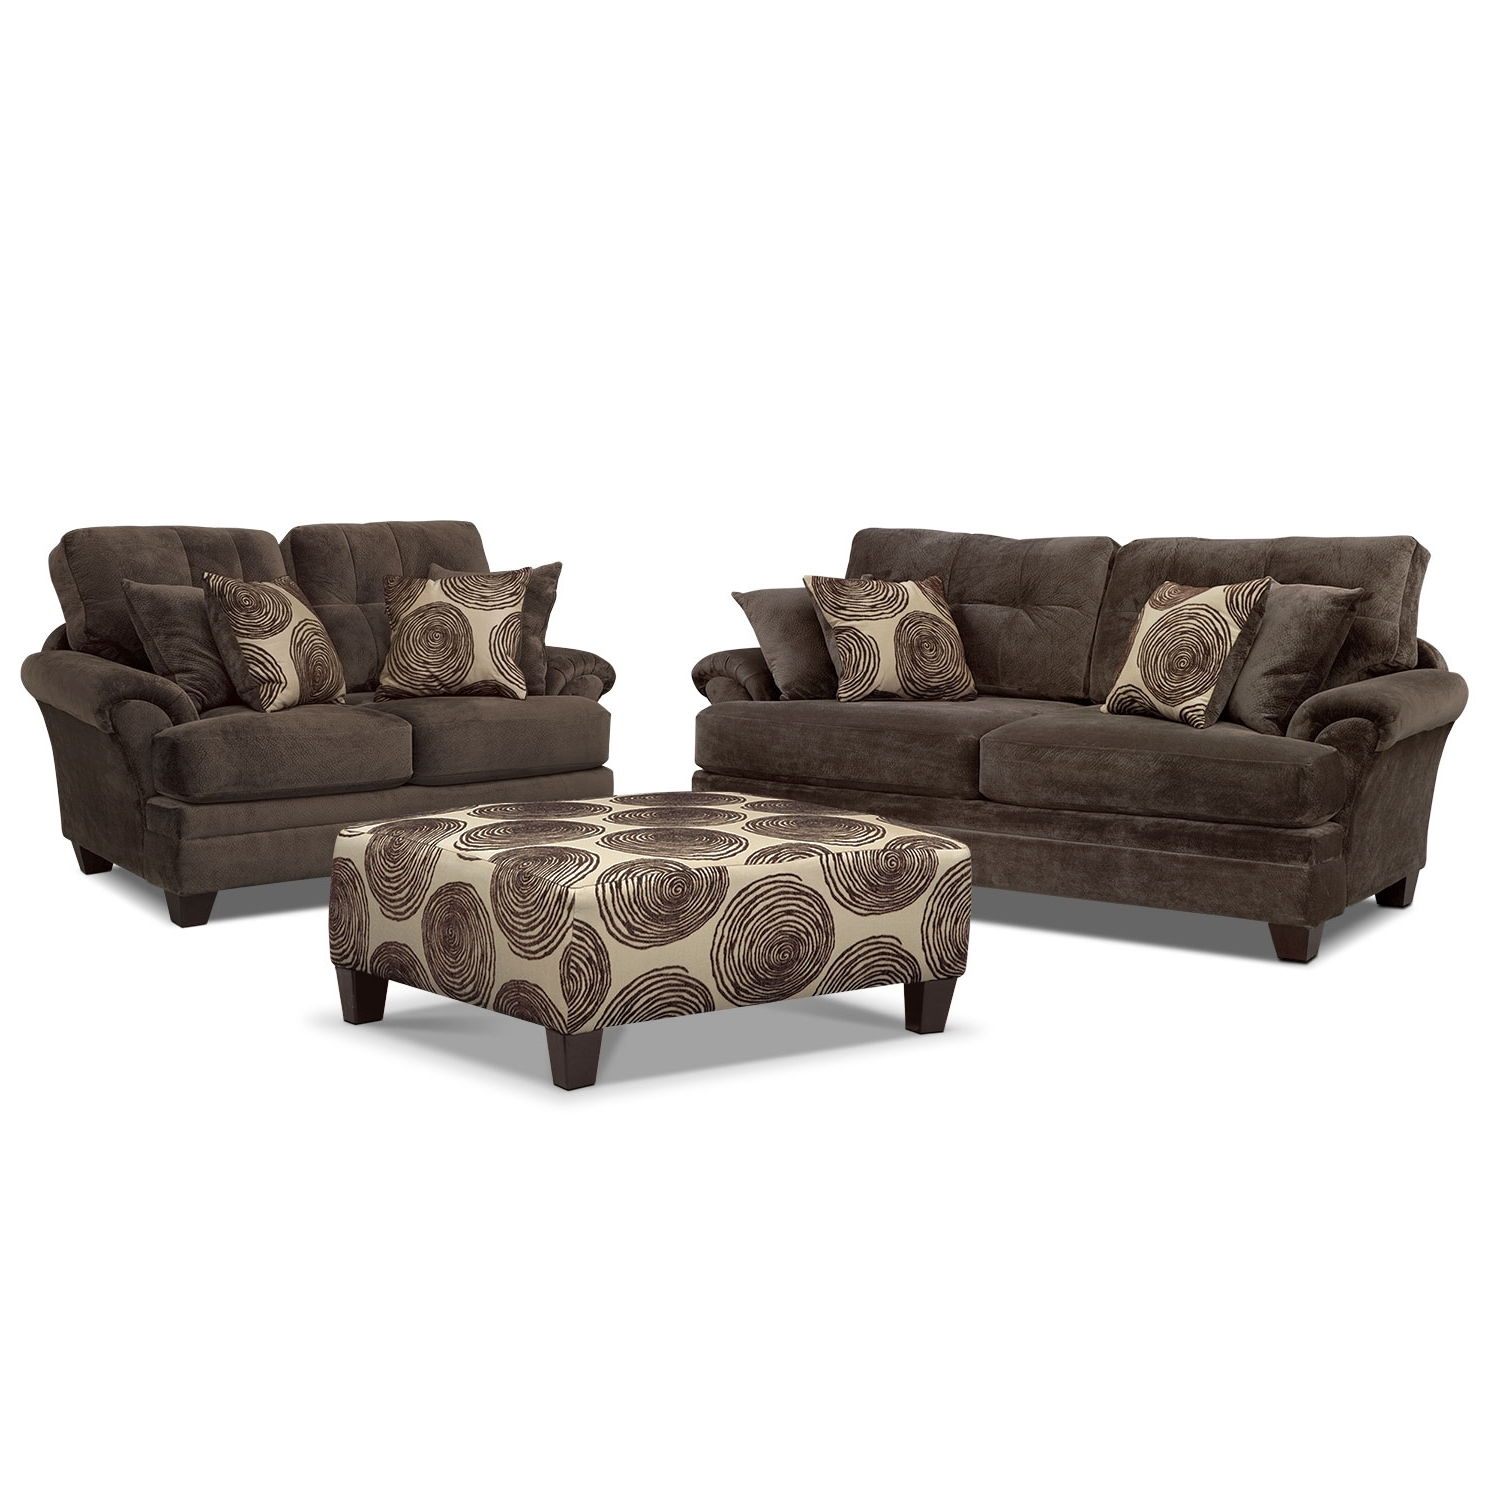 Well Known Cordelle Sofa, Loveseat And Cocktail Ottoman Set – Chocolate Throughout Loveseats With Ottoman (View 13 of 15)